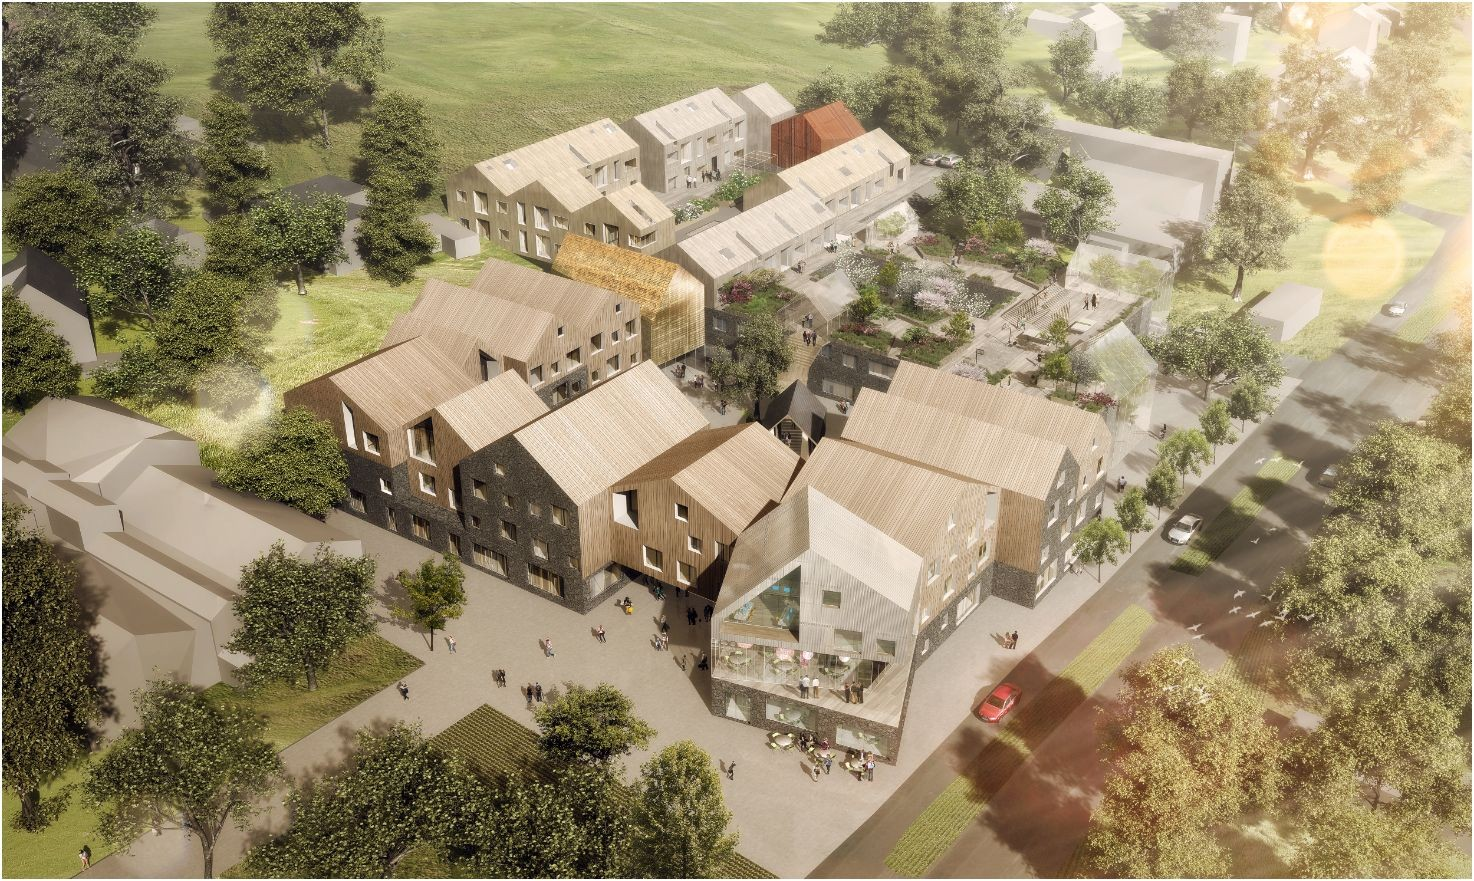 New Healthcare Center Winning Proposal / NORD Architects + 3RW Architects, Courtesy of NORD Architects + 3RW Architects